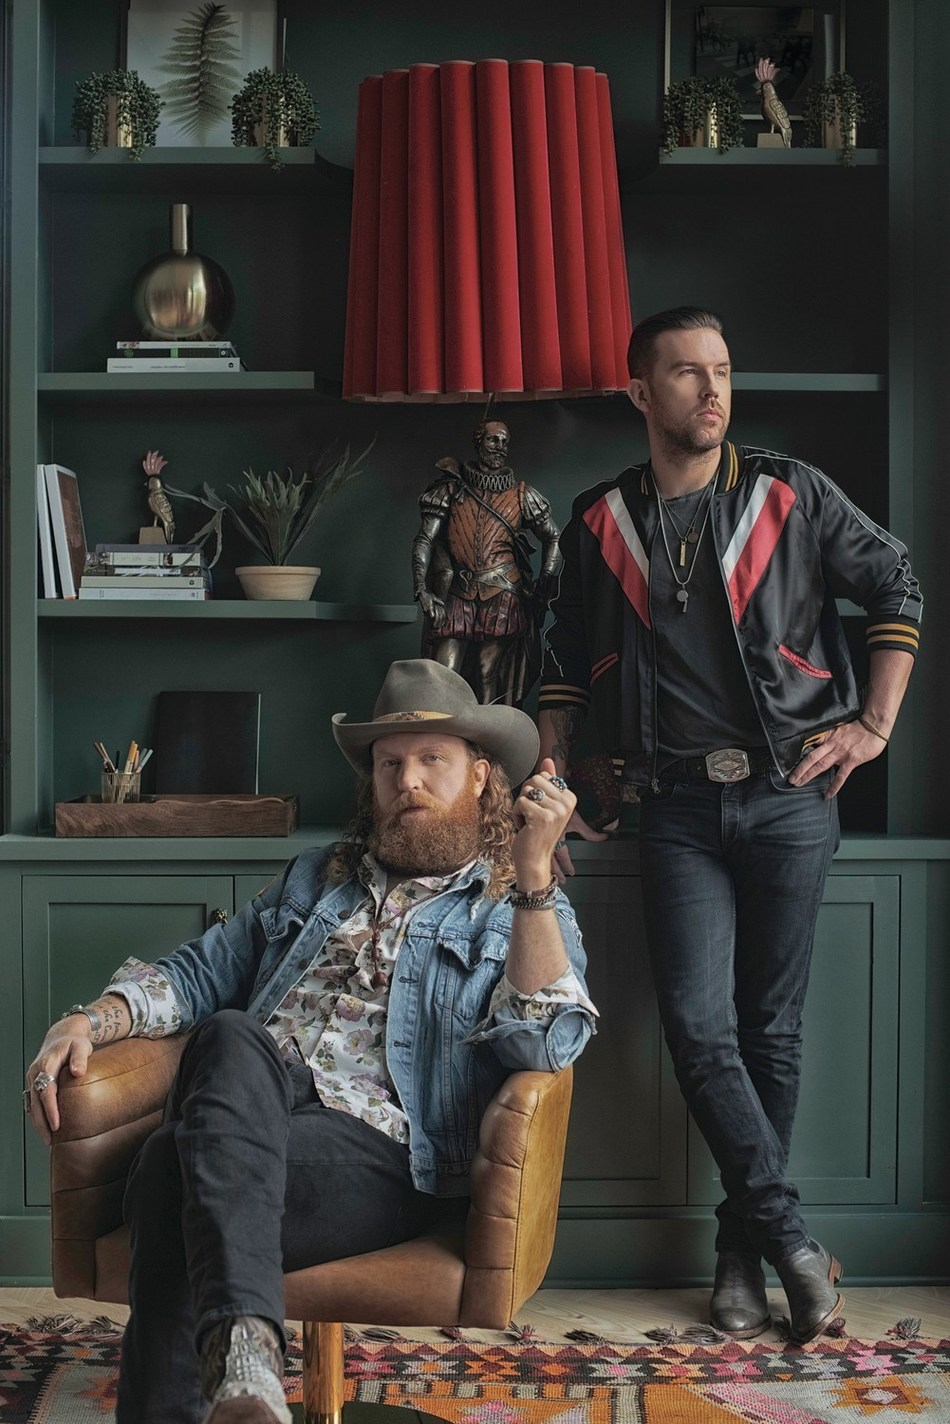 Brothers Osborne will be honored with the ASCAP Vanguard Award at the 57th annual ASCAP Country Music Awards in downtown Nashville on November 11.